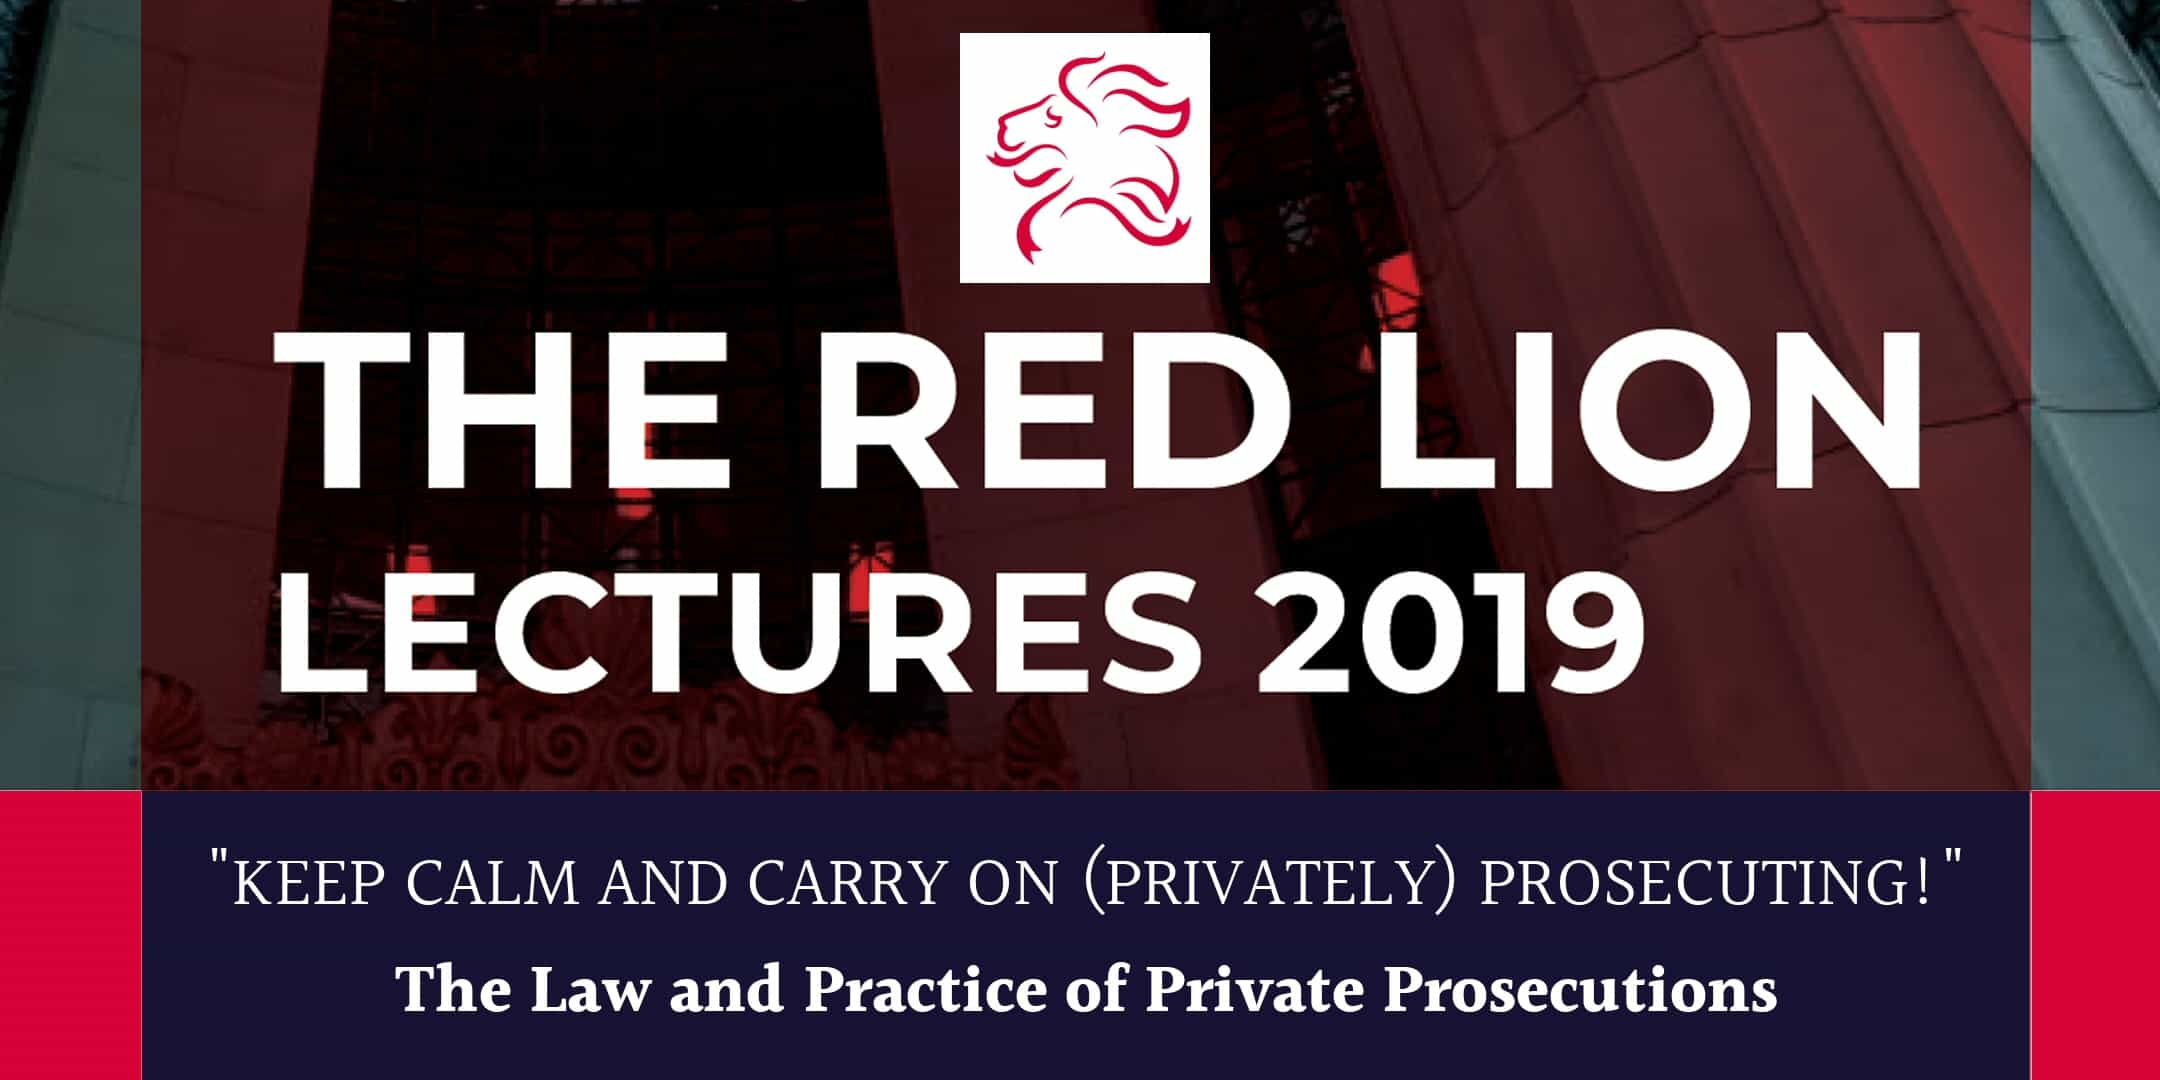 Gillian Jones QC, Andrew Marshall & David Walbank QC discuss private prosecutions in the third of 'The Red Lion Lectures 2019'